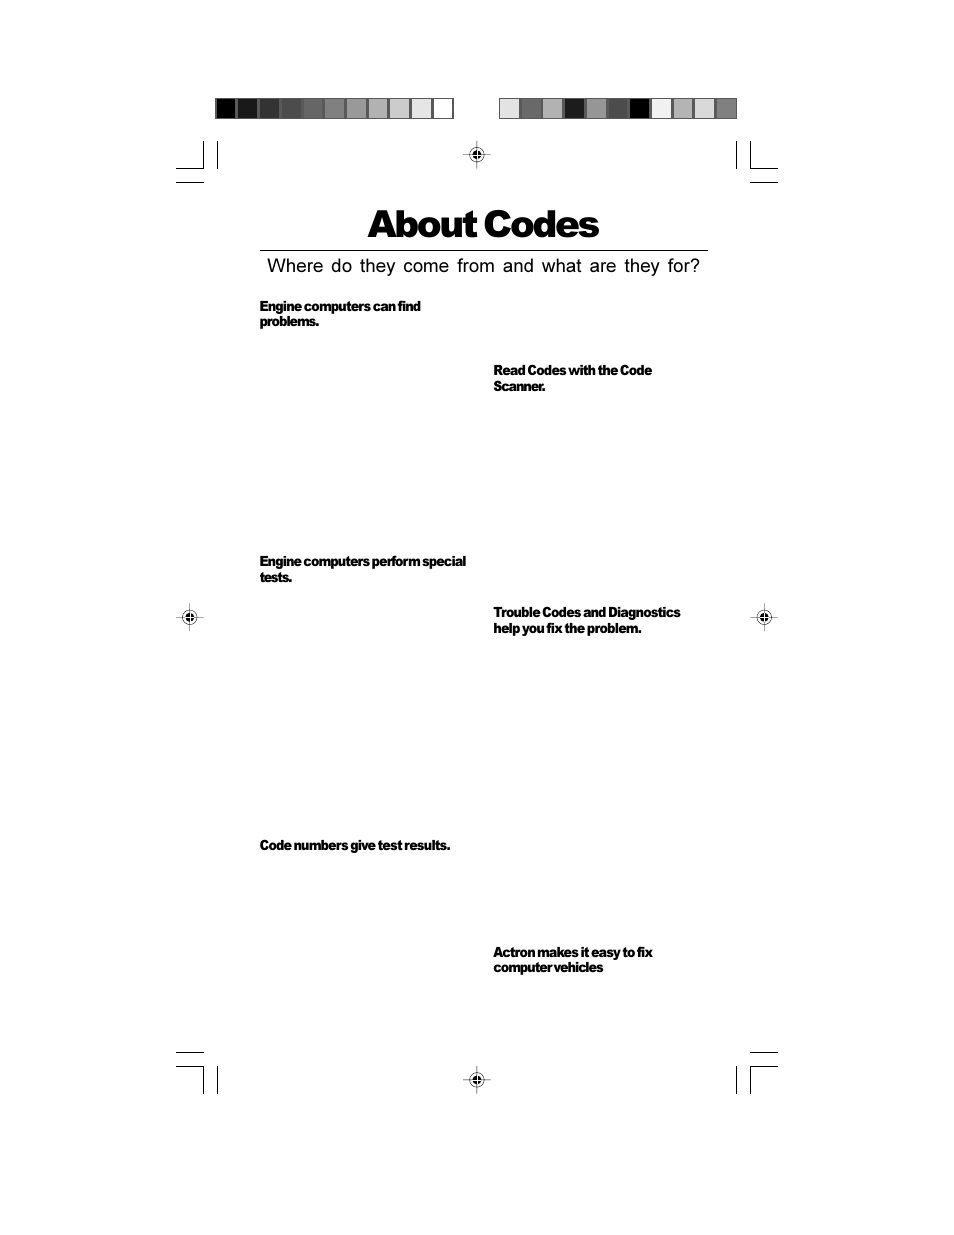 About codes, Where do they come from and what are they for